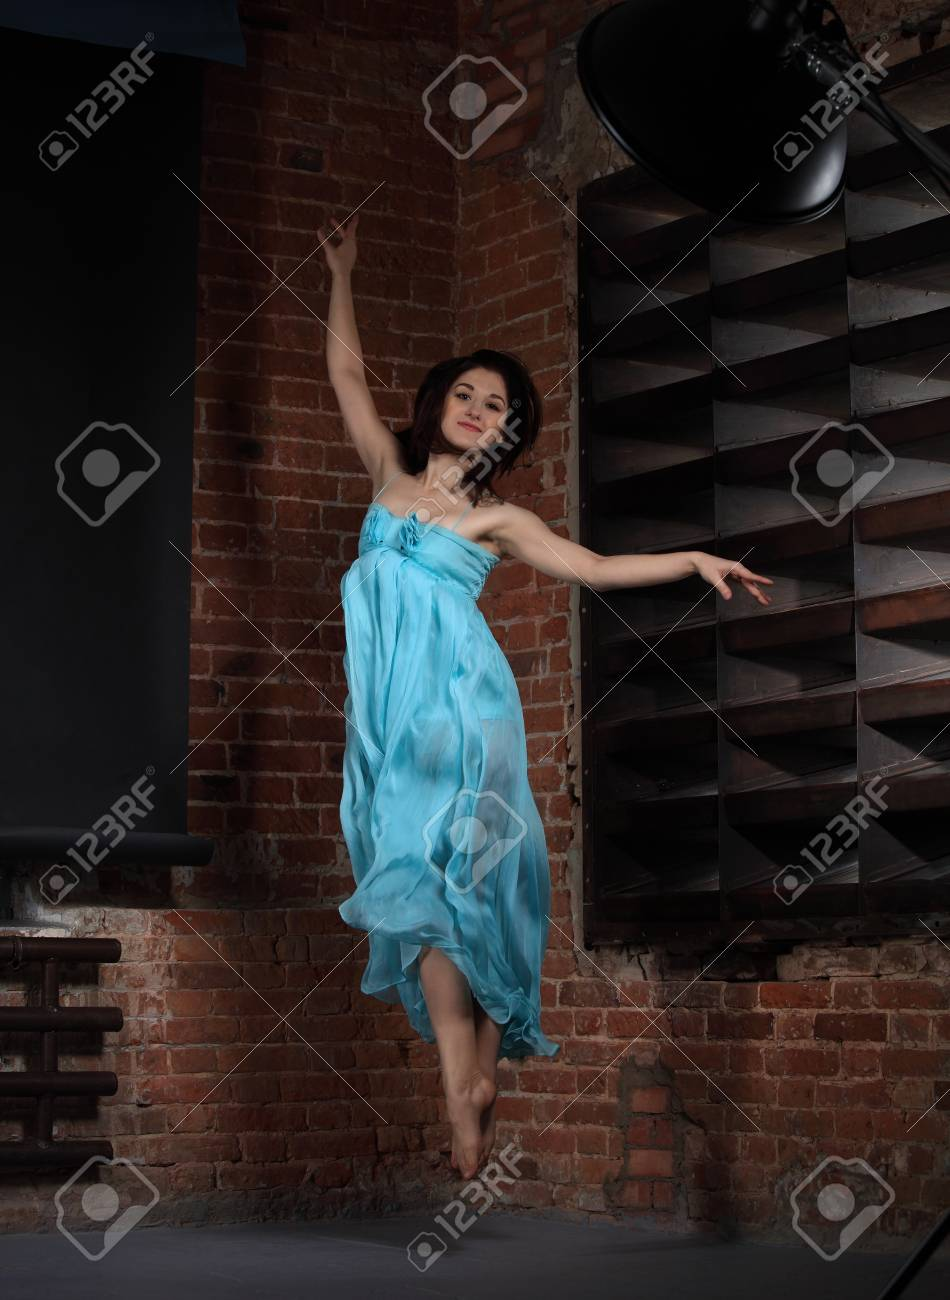 Young brunette woman dancing over brick walls Stock Photo - 12285182